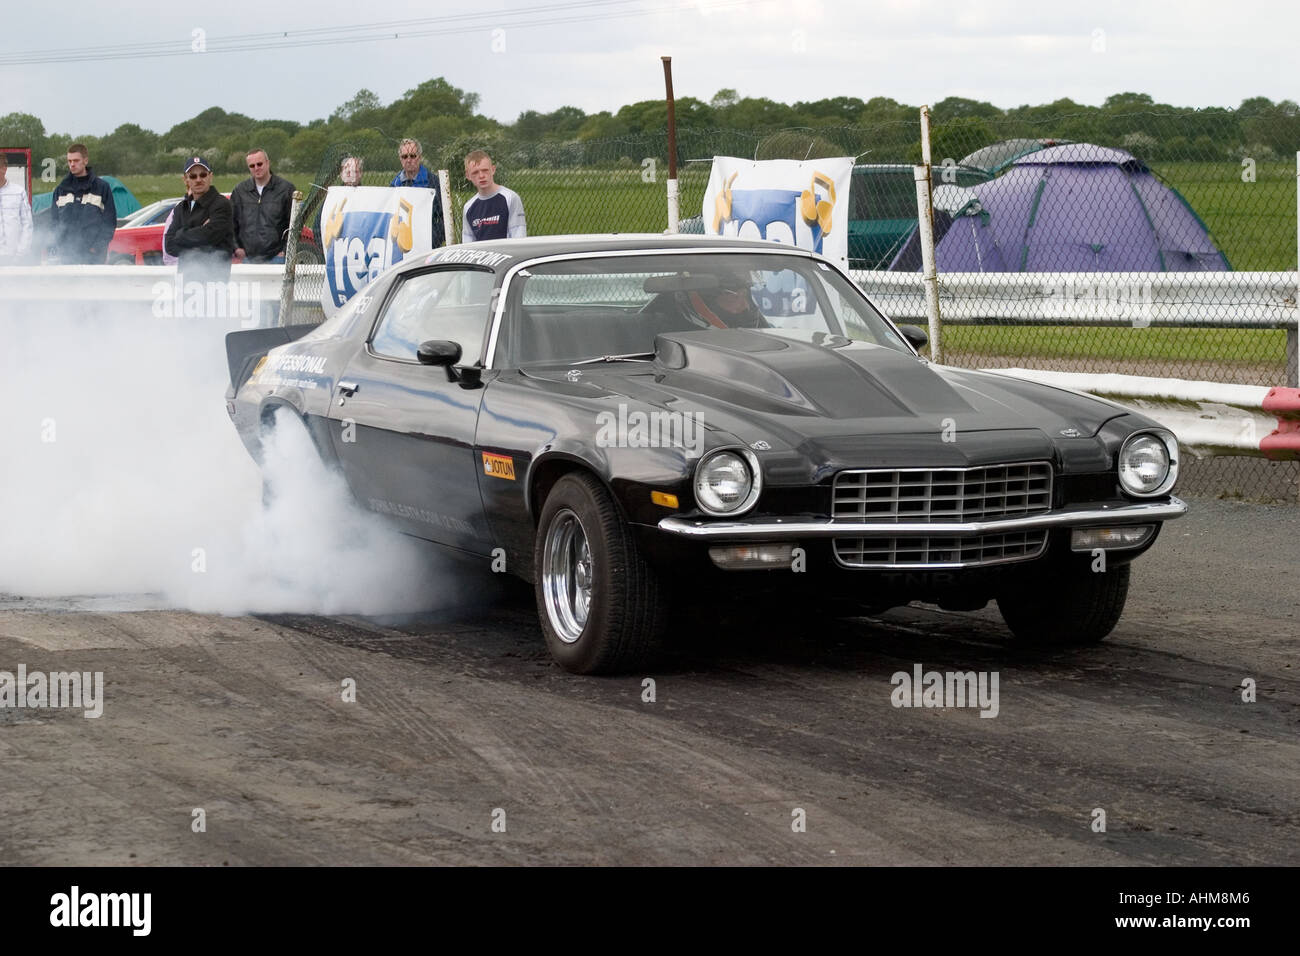 American Muscle Car Doing Burnout Before Start Of Drag Race Stock